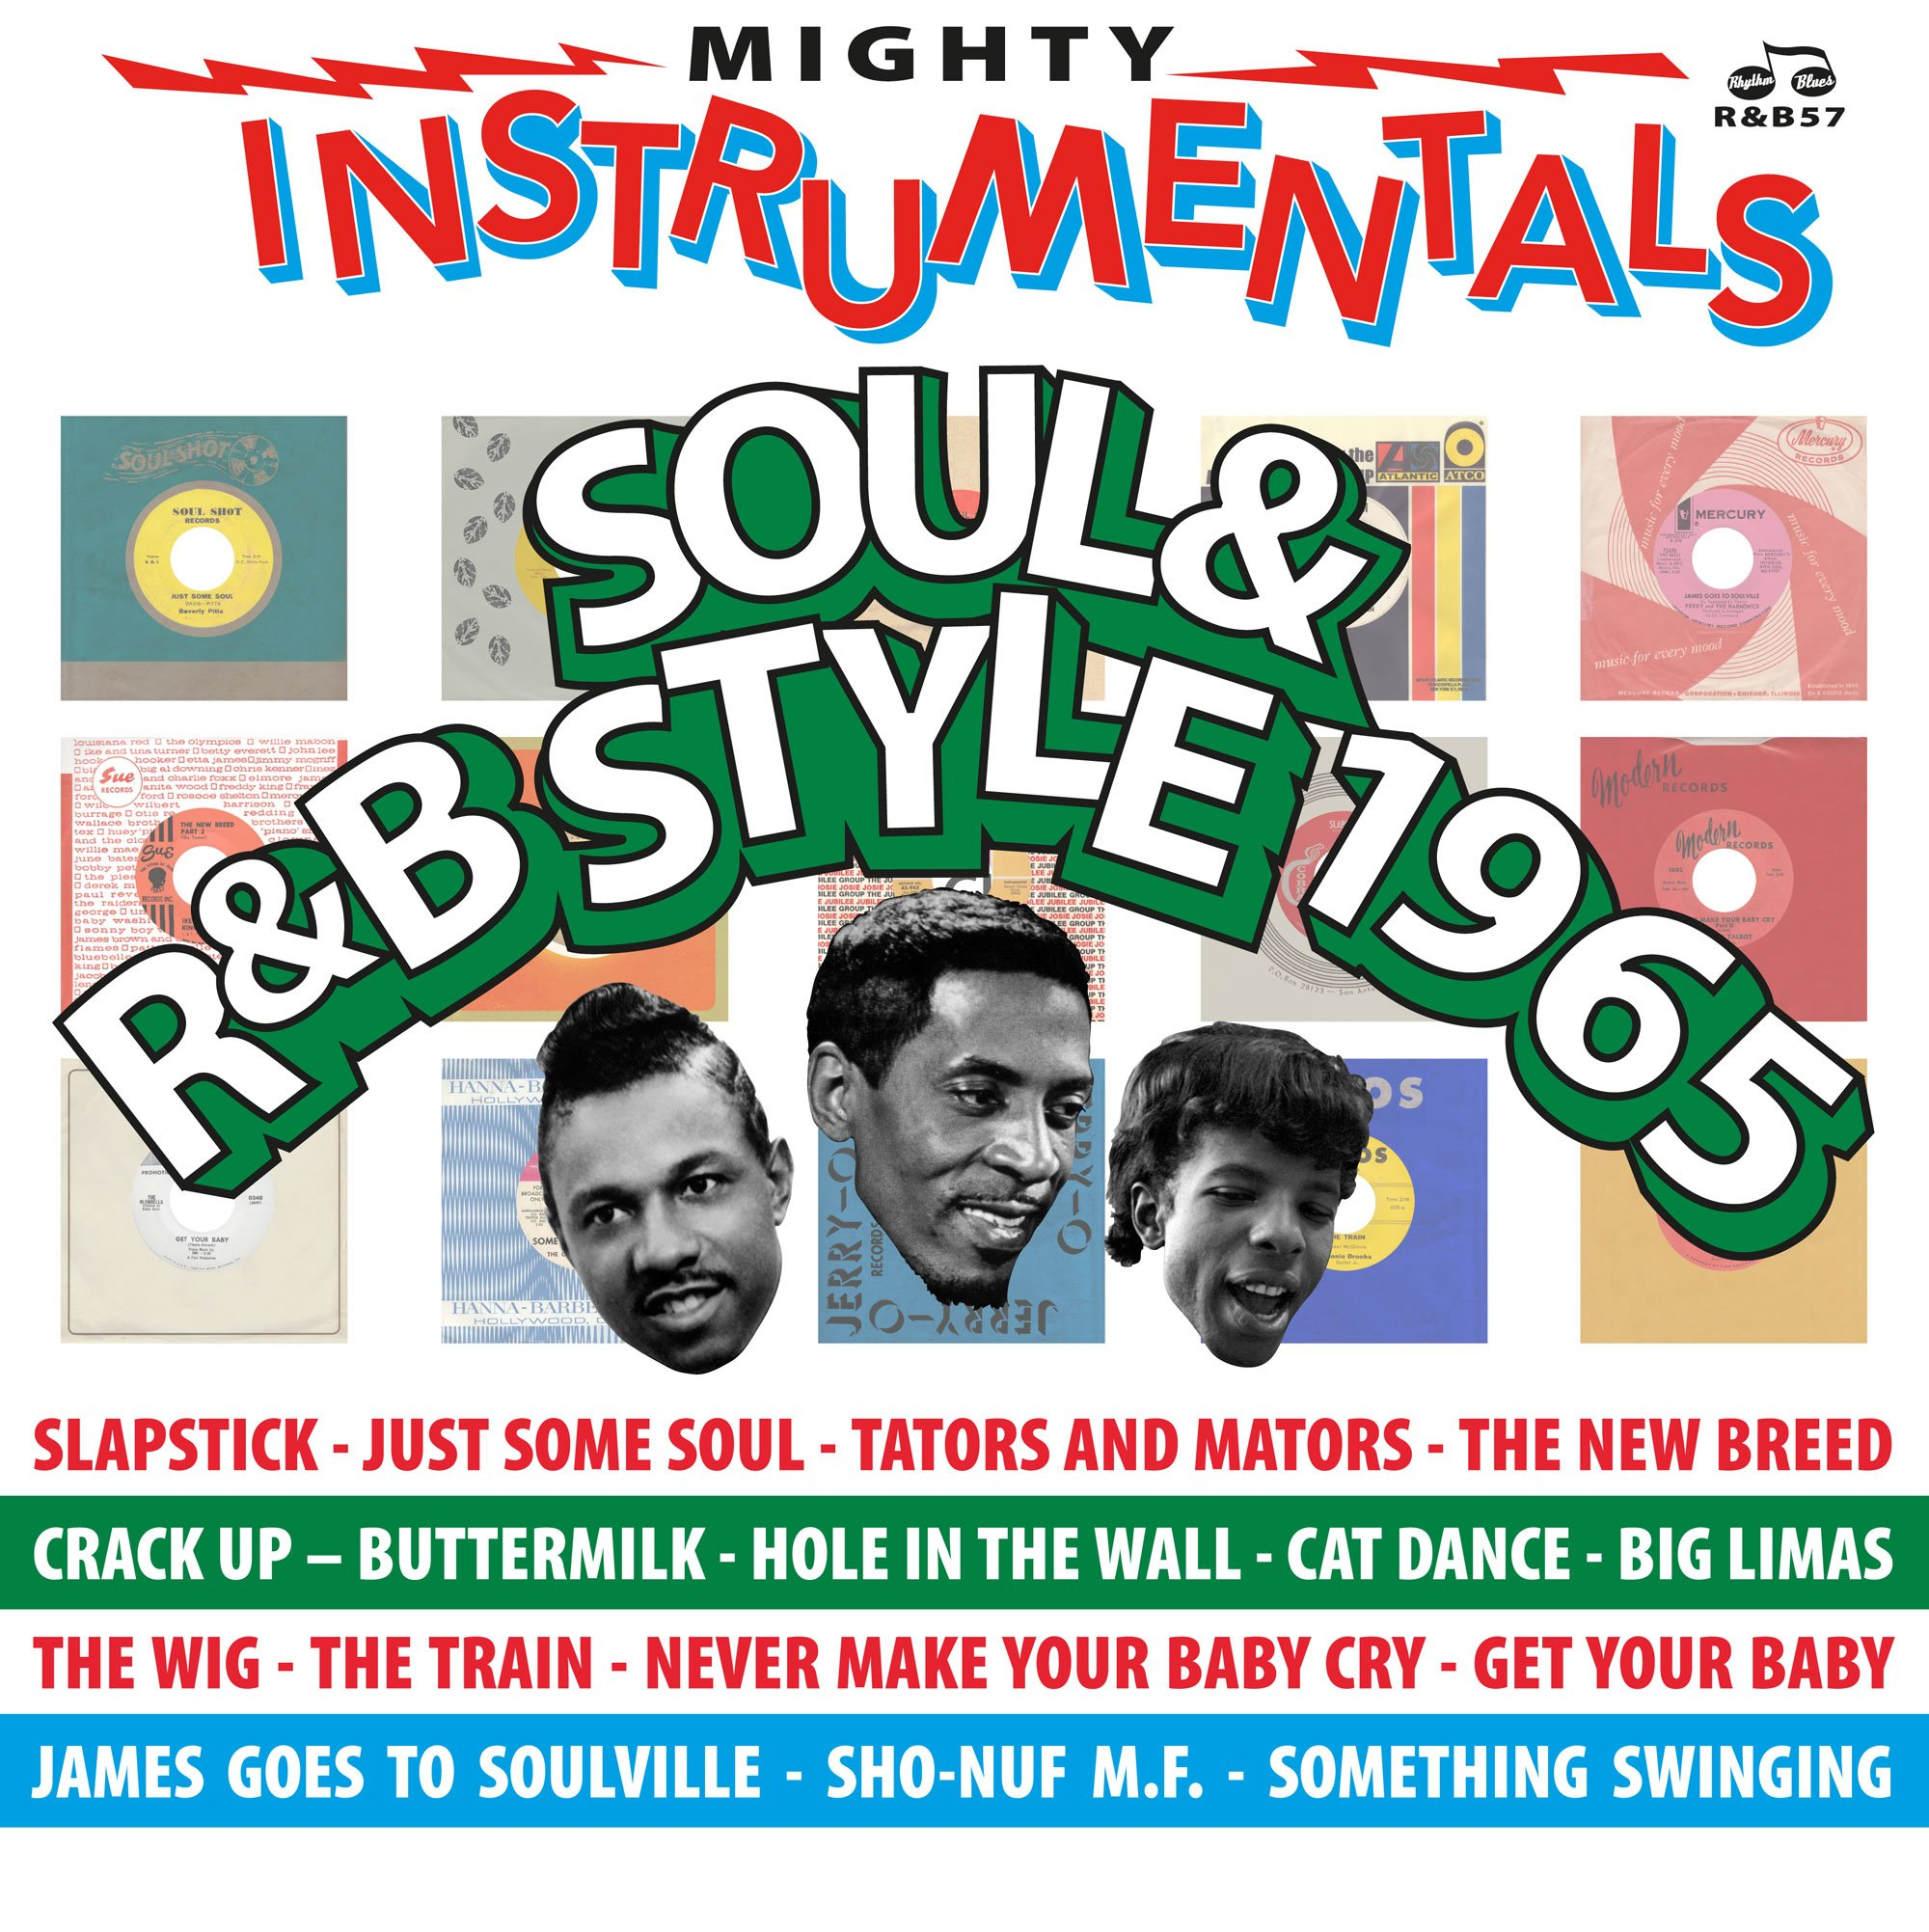 Mighty Instrumentals Soul & R&B-Style 1965